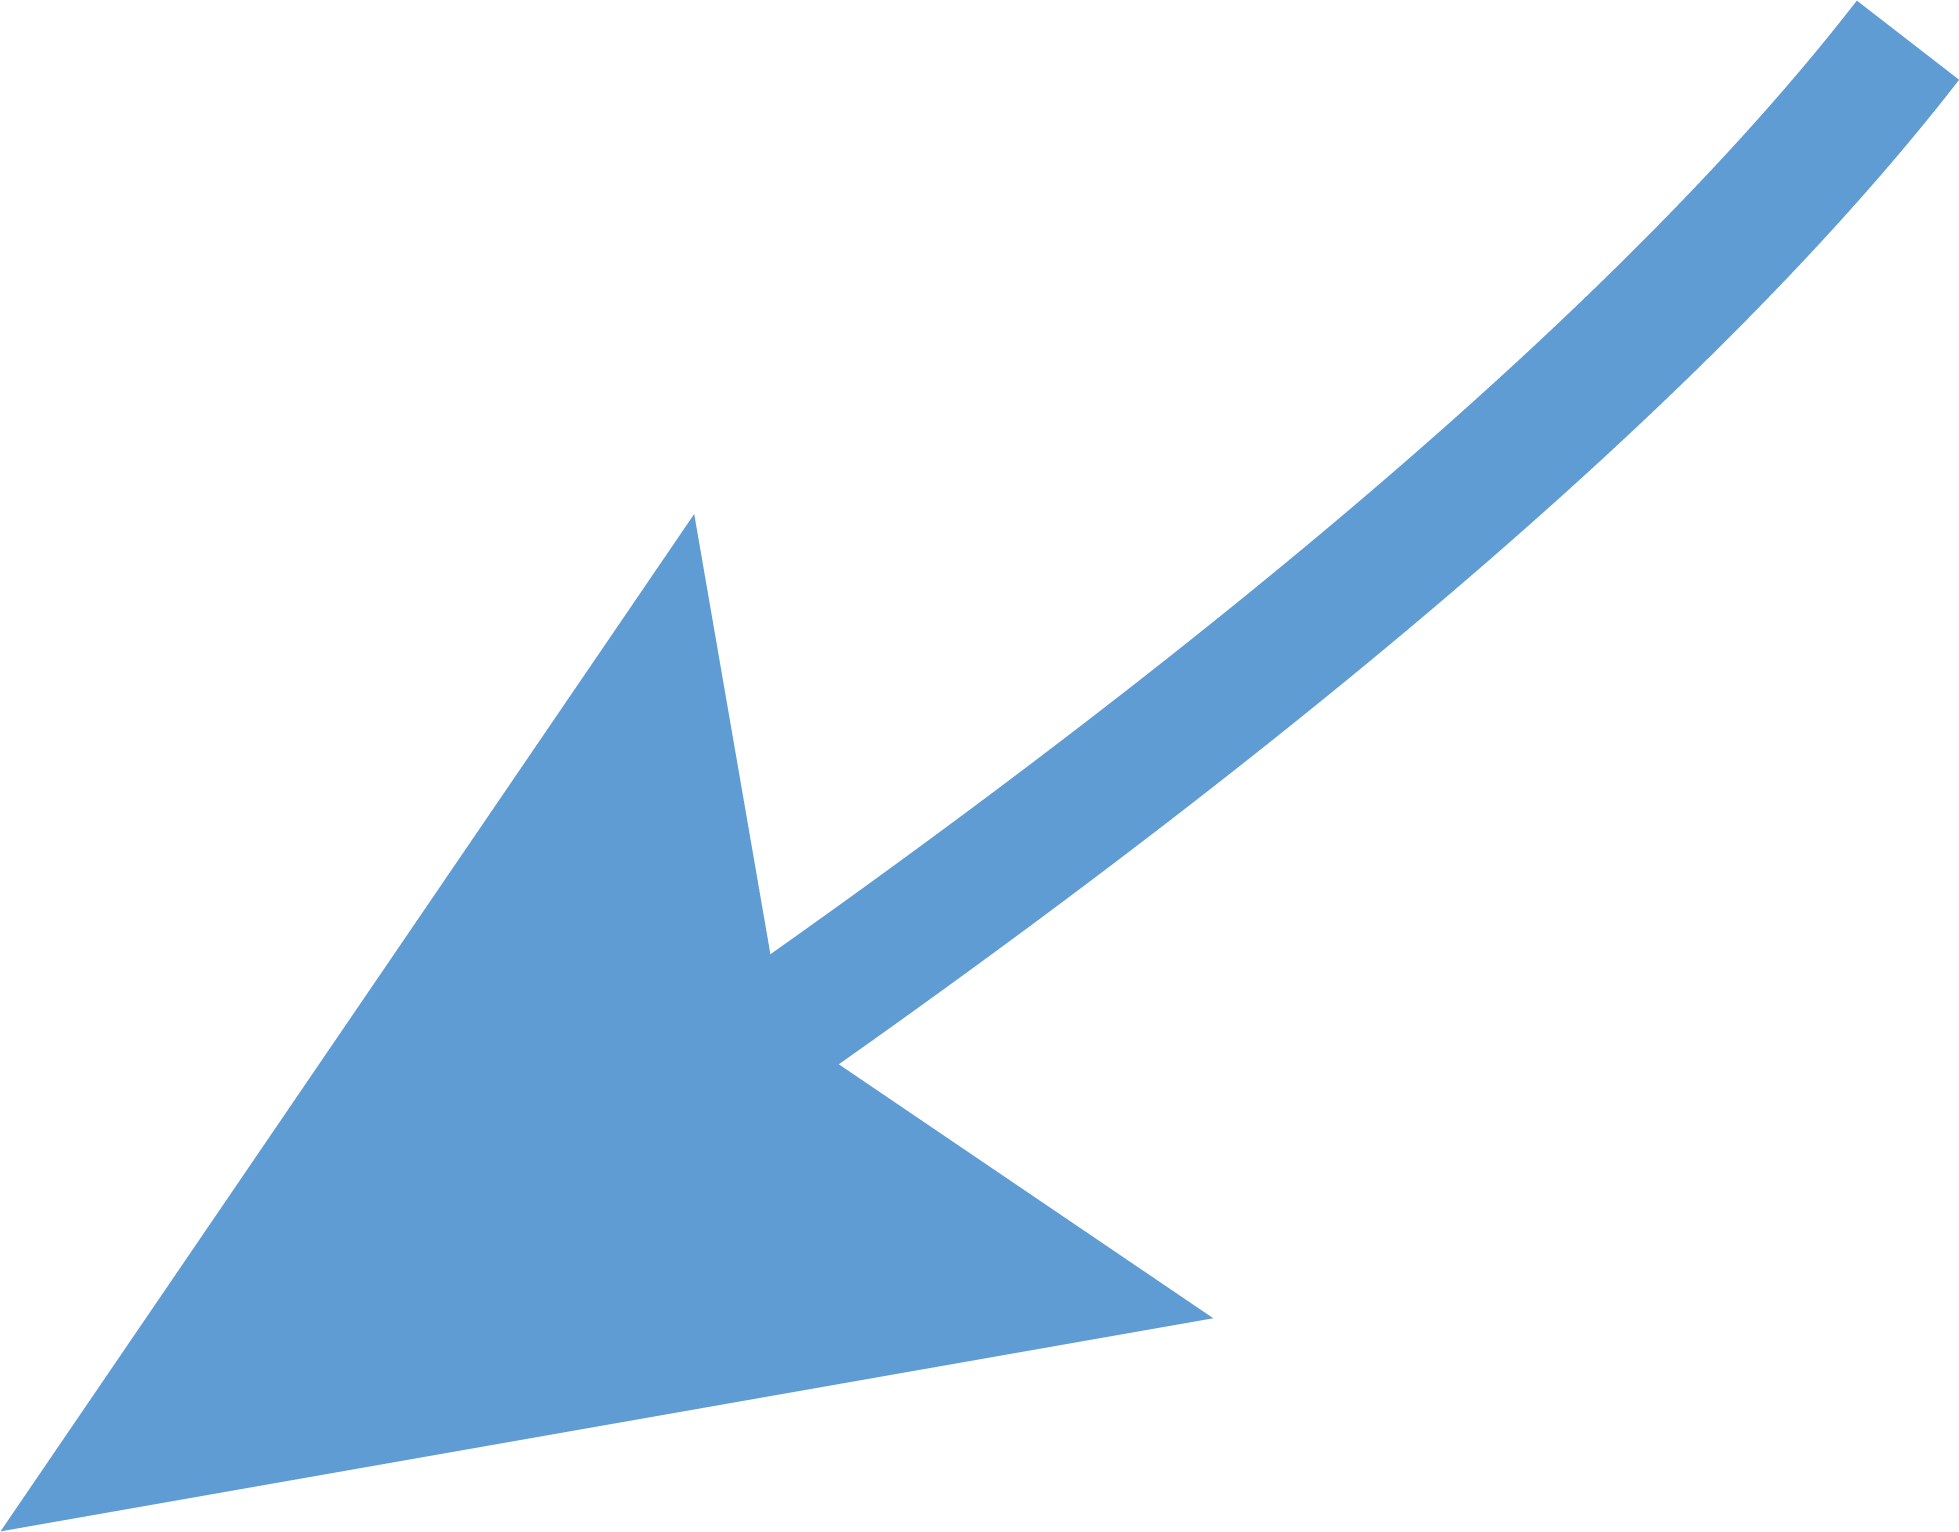 curved arrow